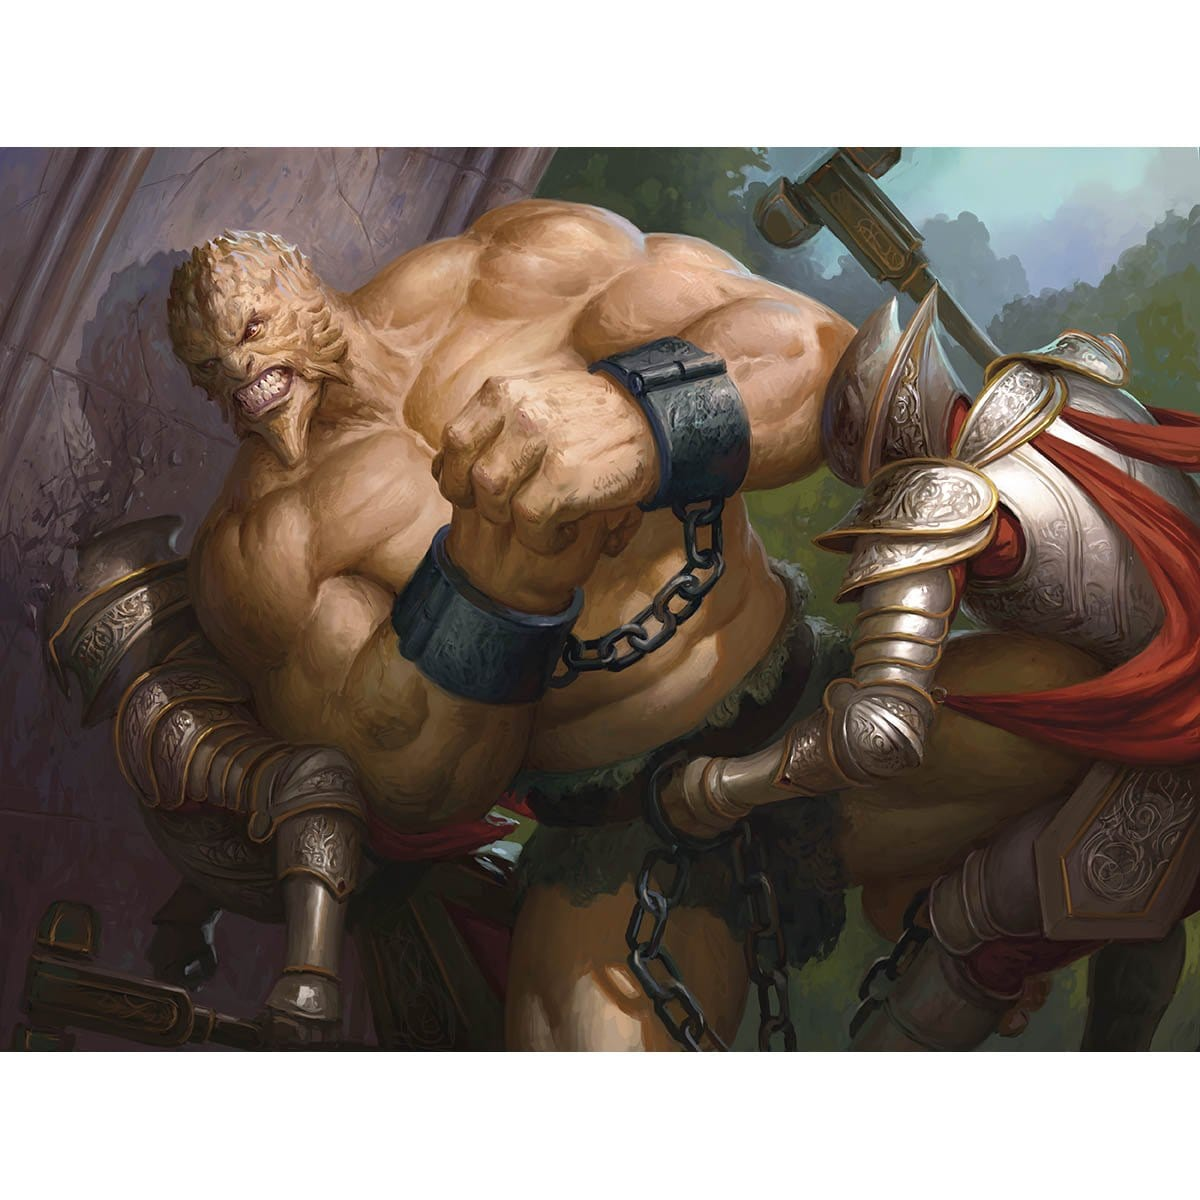 Weight Advantage Print - Print - Original Magic Art - Accessories for Magic the Gathering and other card games